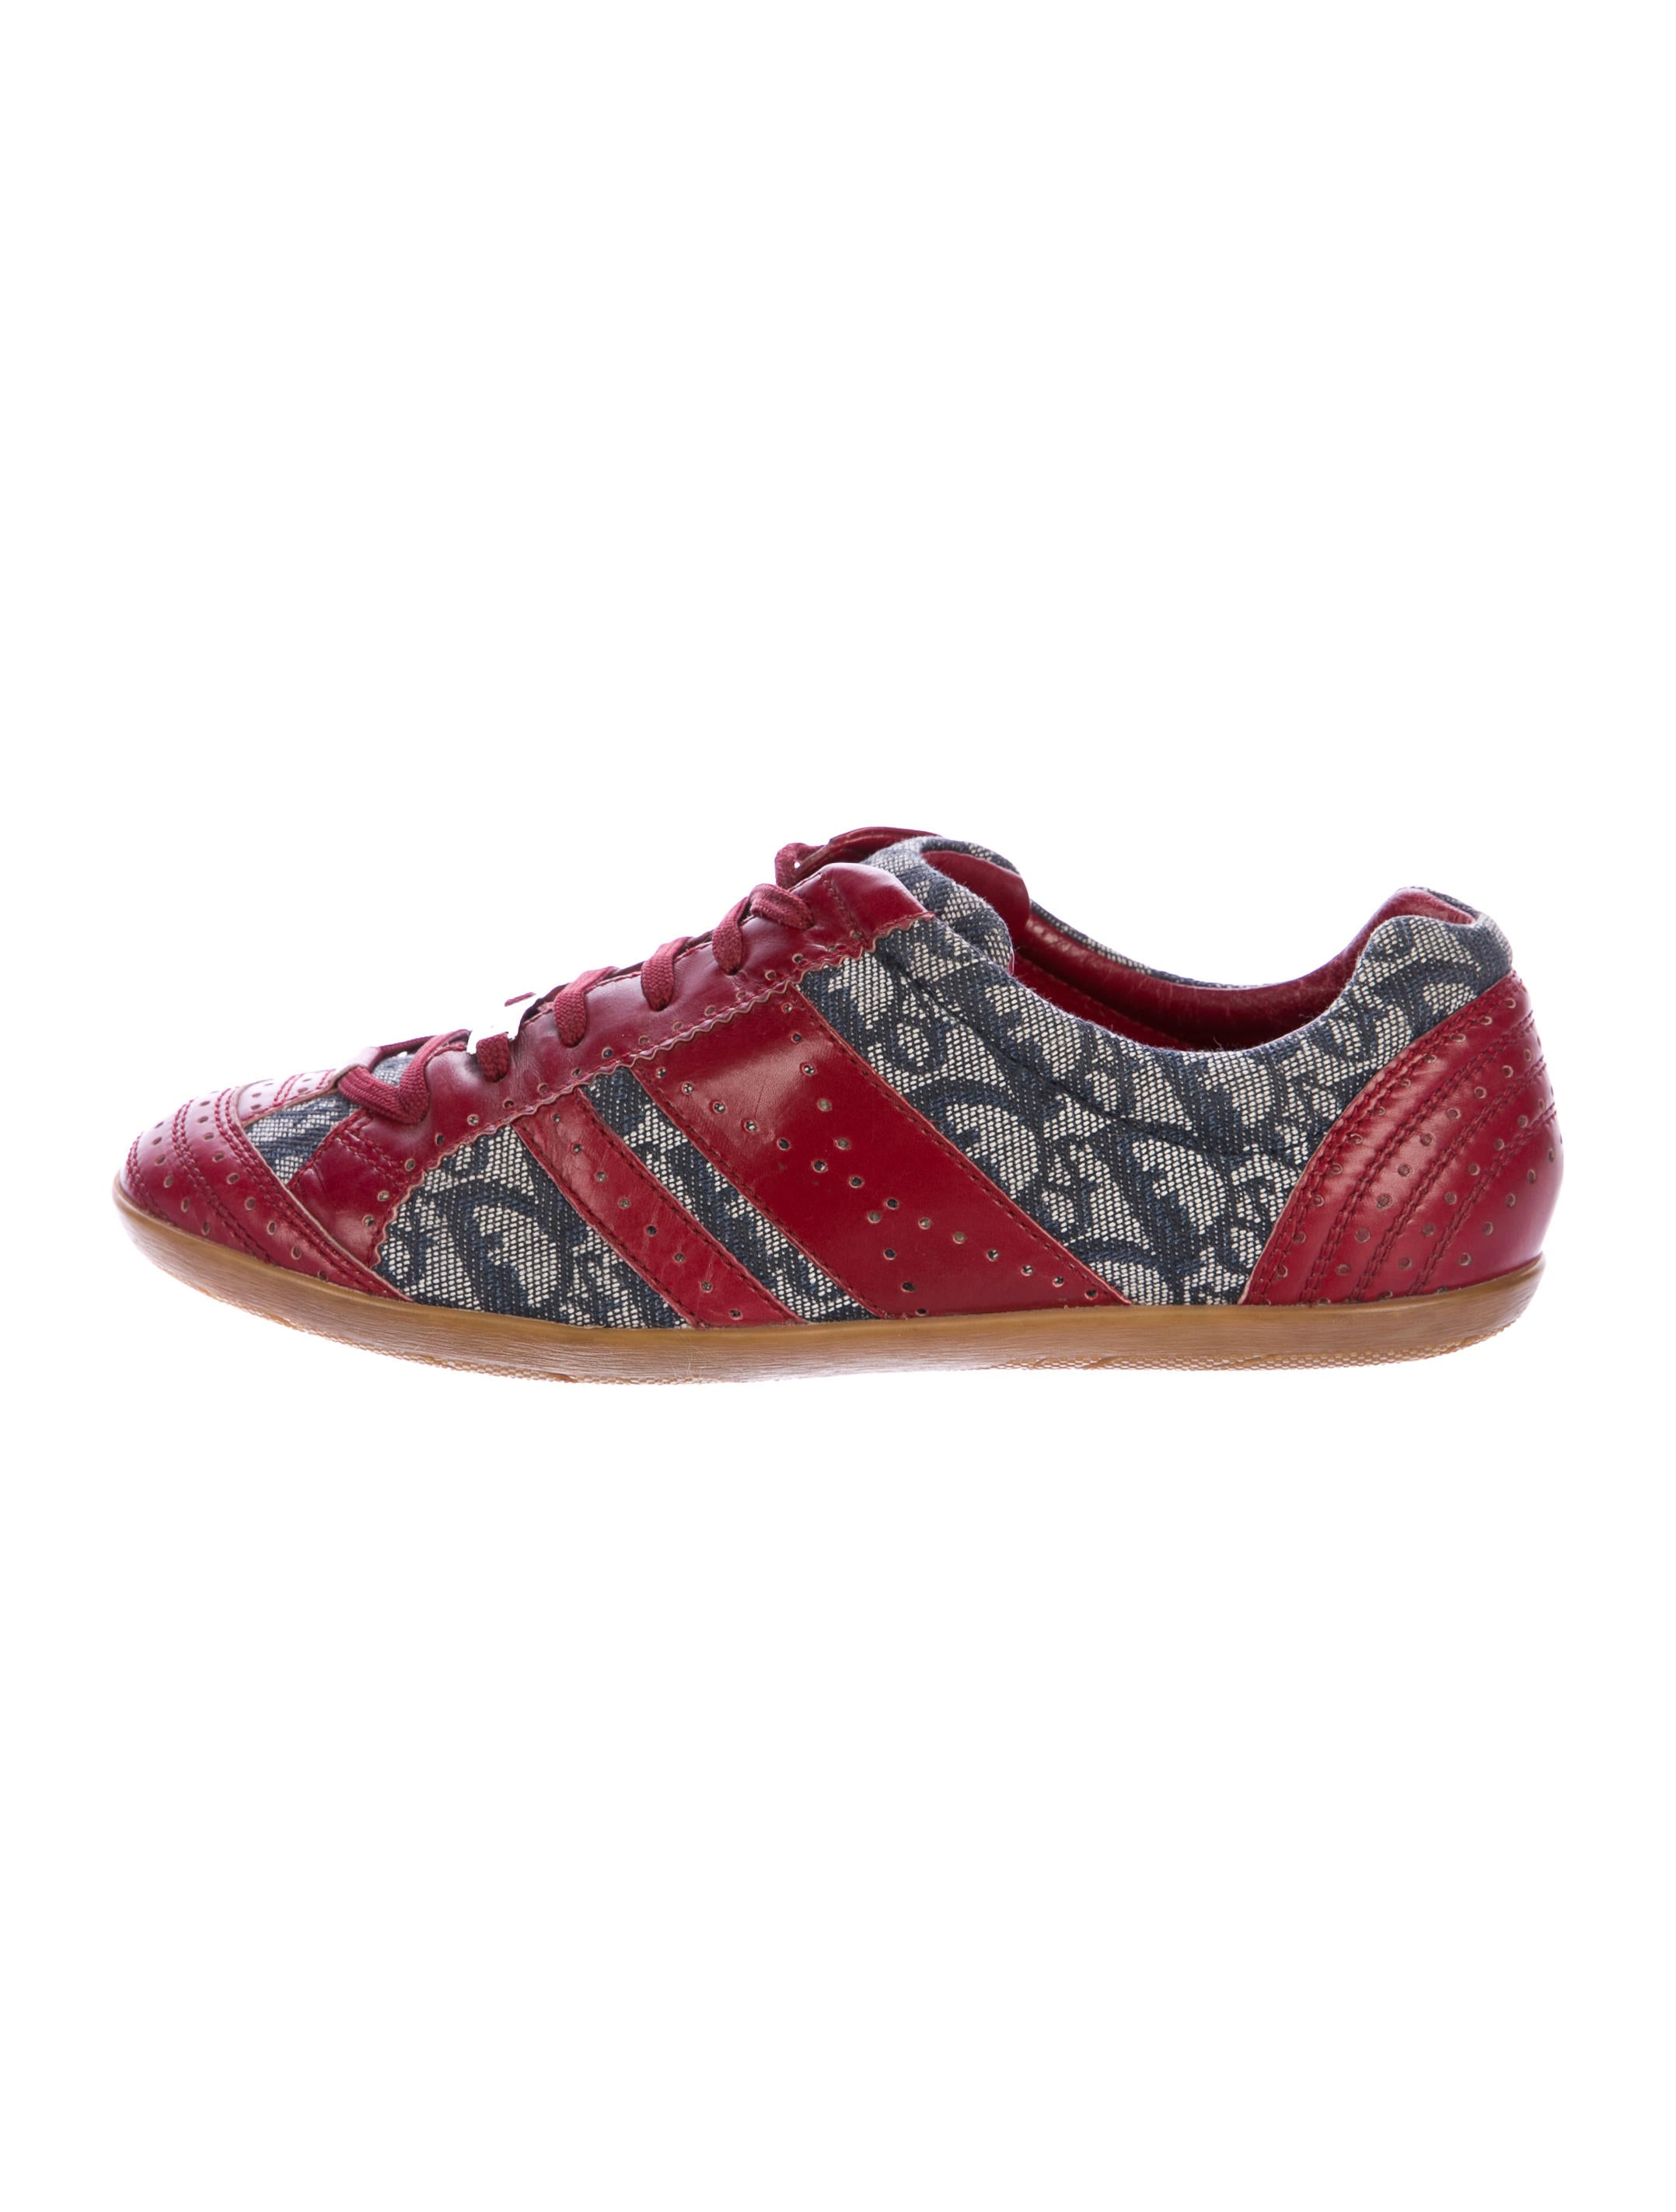 Christian Dior Canvas Diorissimo Sneakers clearance low shipping 2SEhM